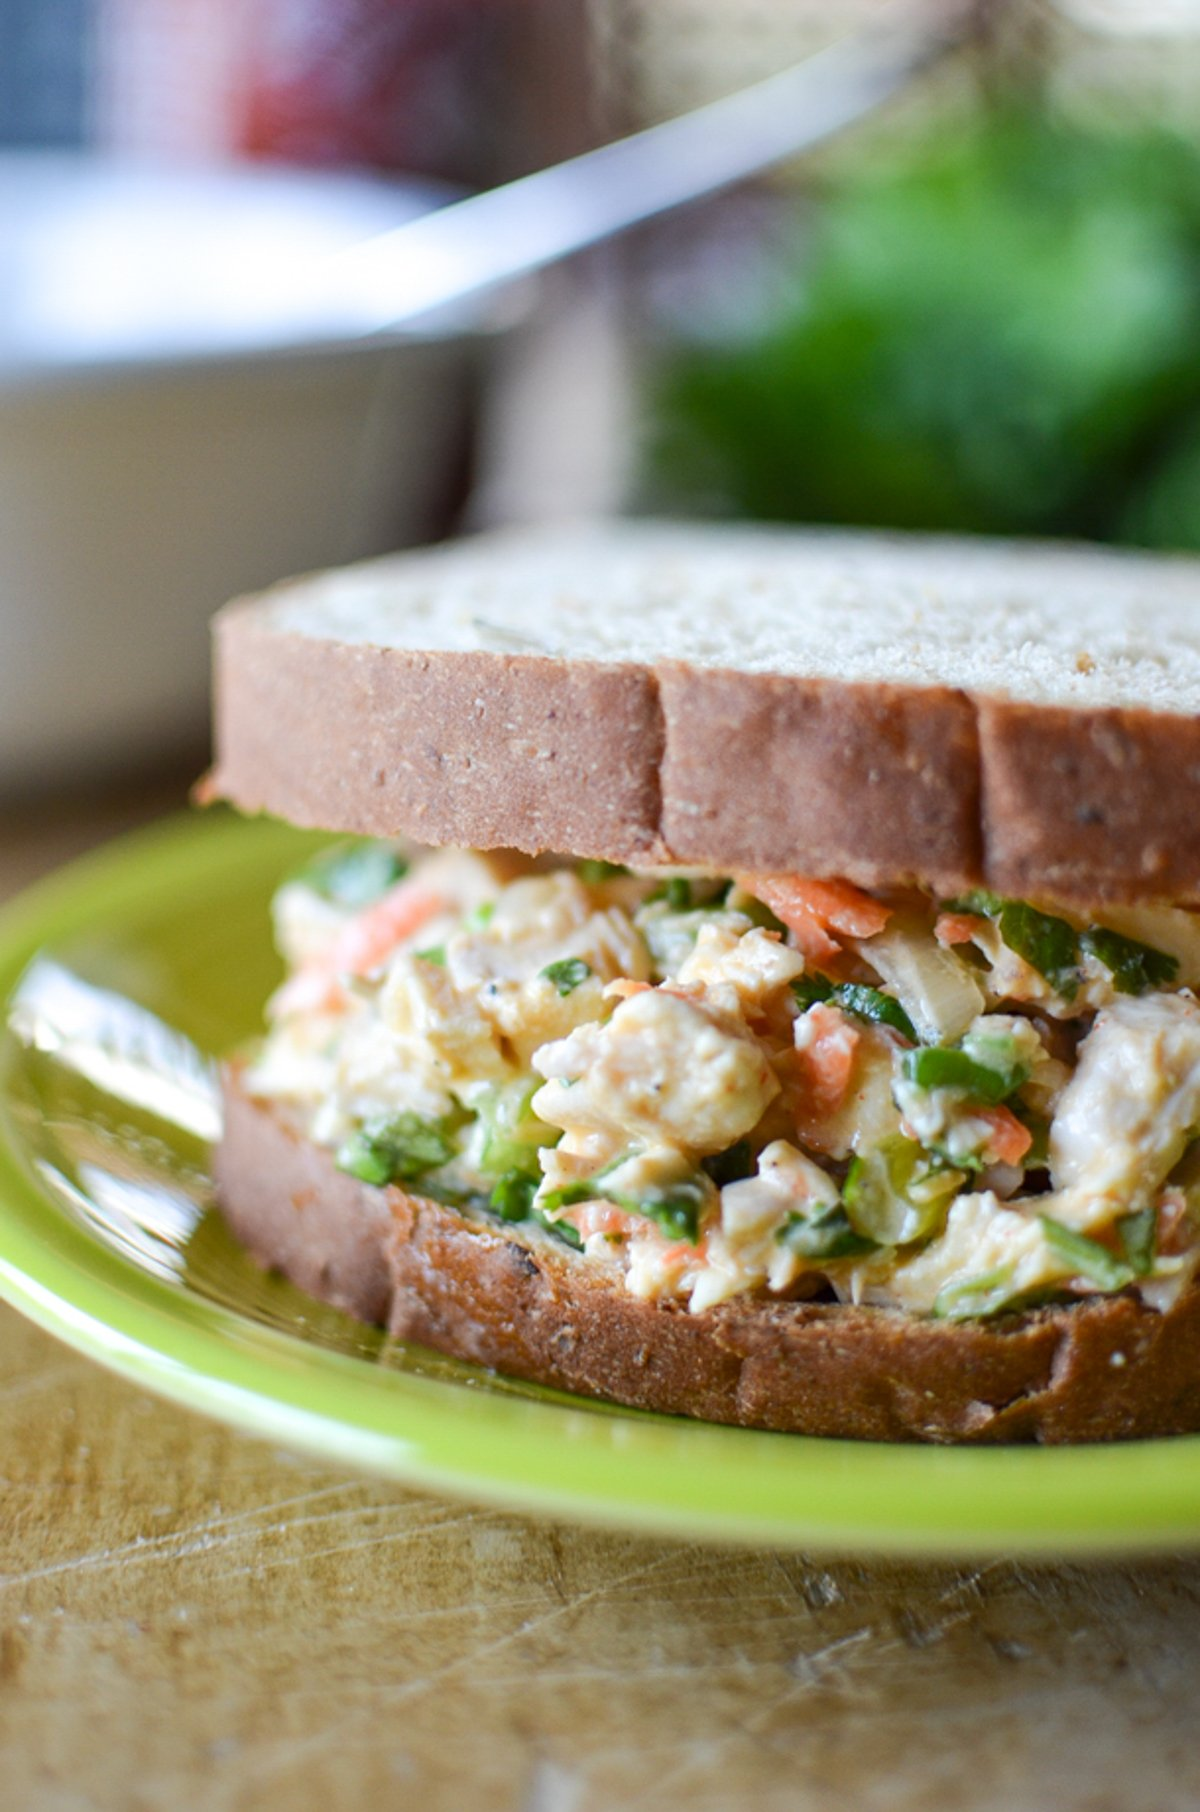 16 Make-Ahead Cold Lunch Ideas to Prep for Work This Week - Try prepping these awesome cold lunch ideas instead of reheating! - ProjectMealPlan.com